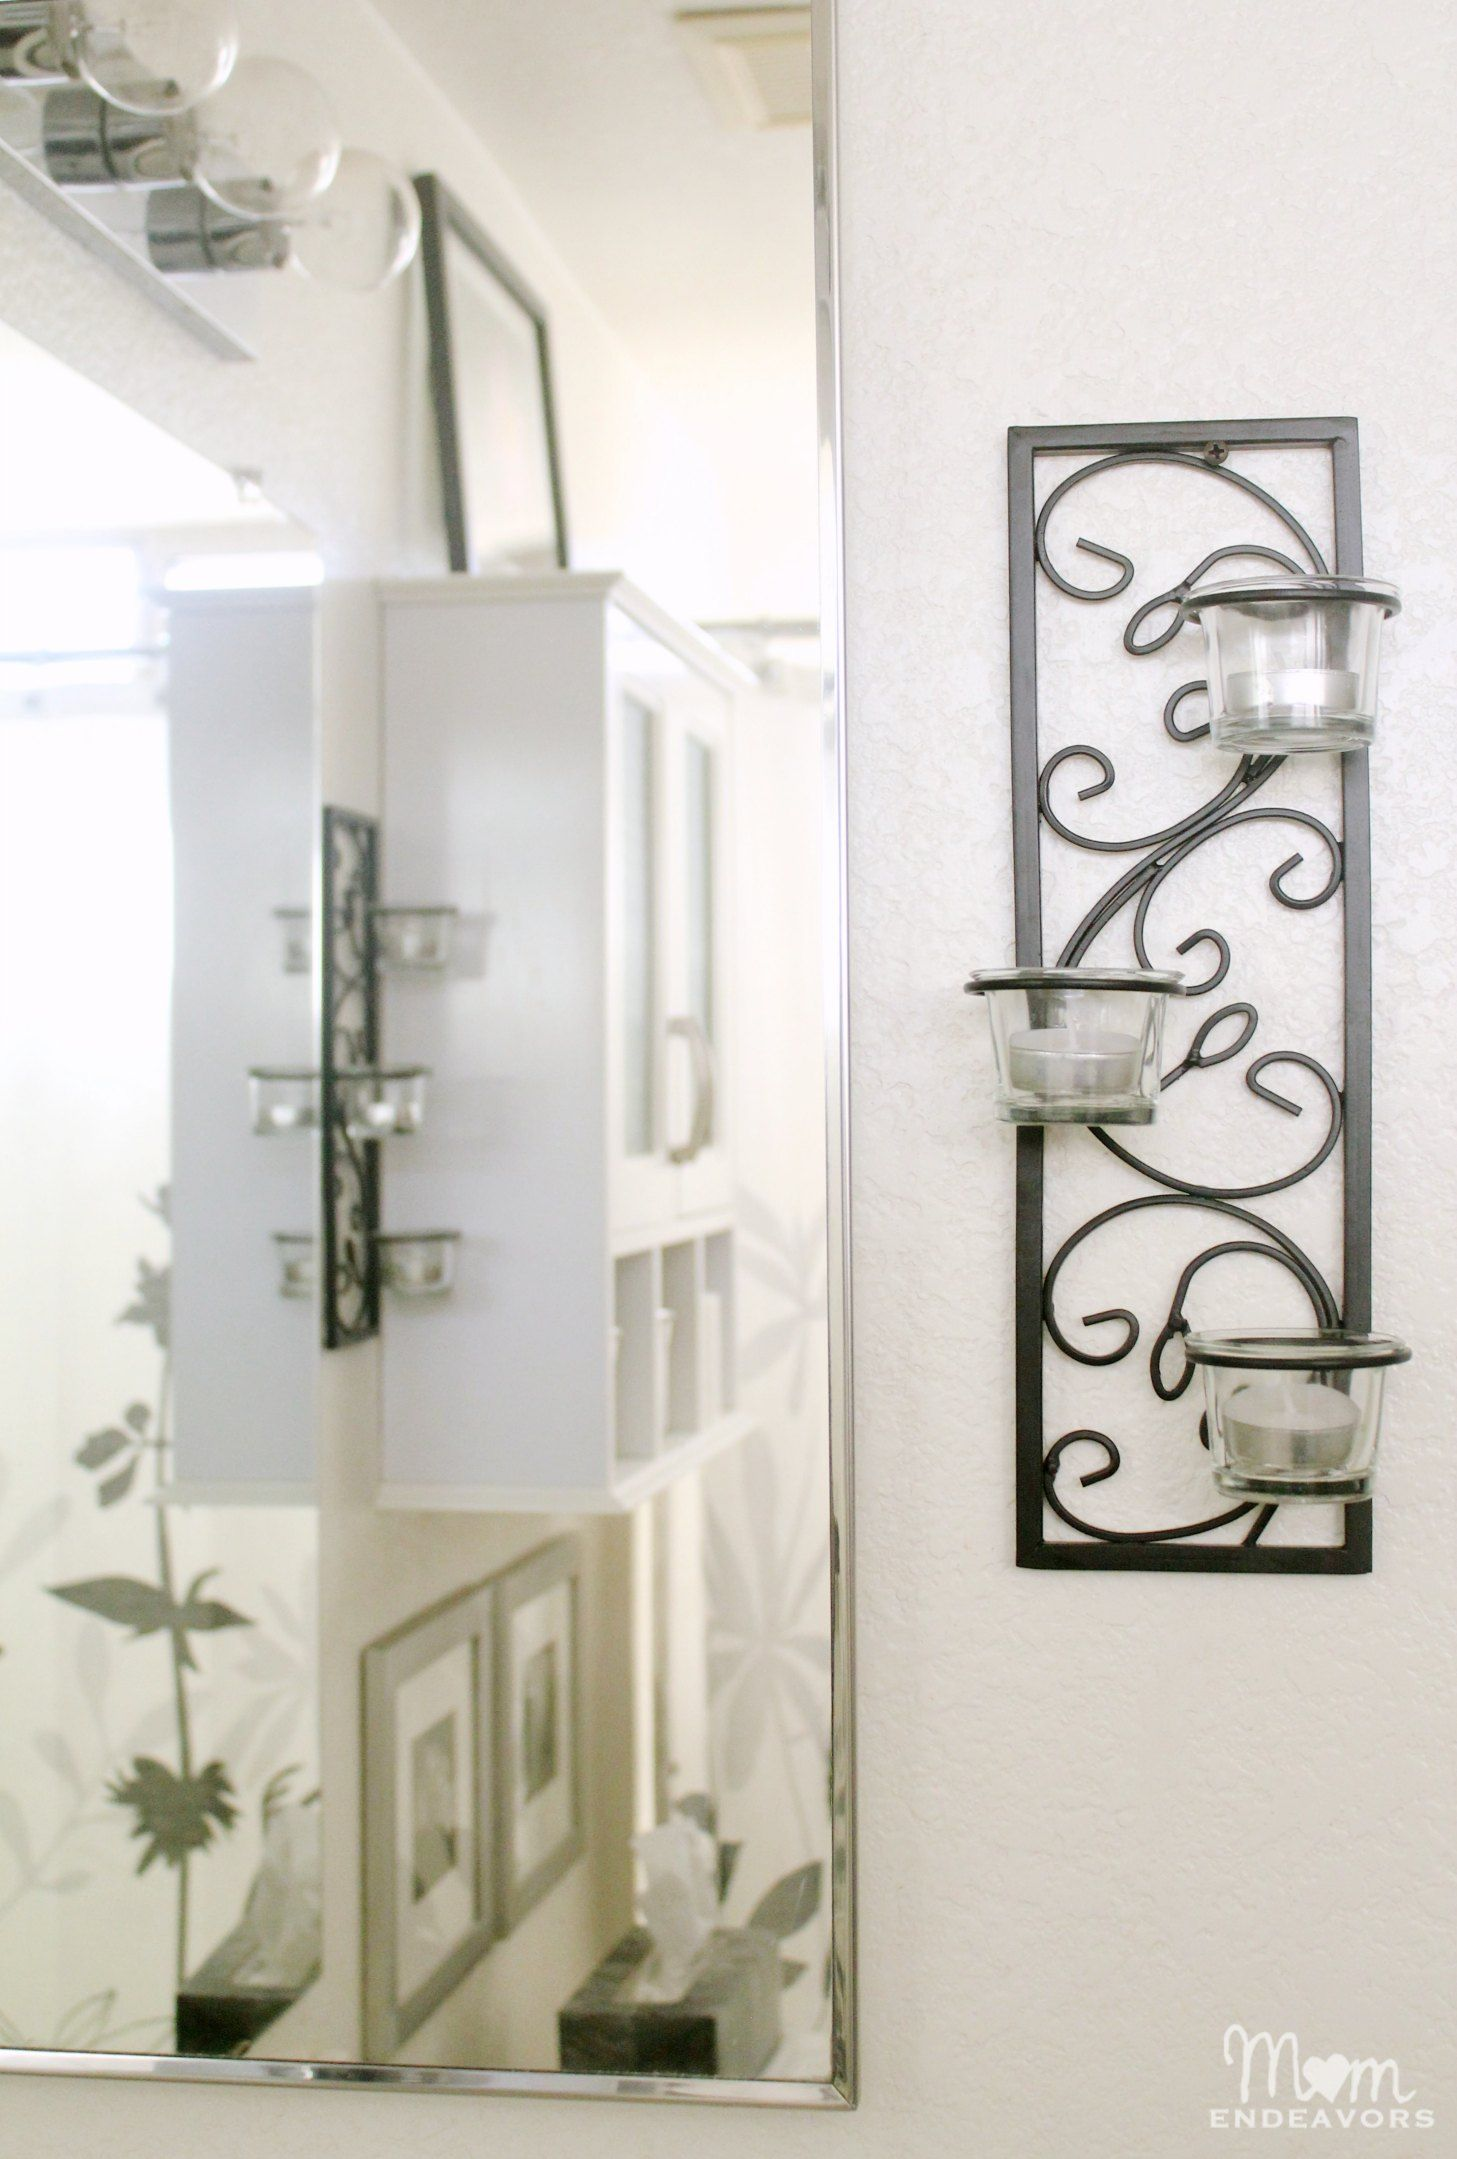 Wall Sconces Can Work In The Bathroom